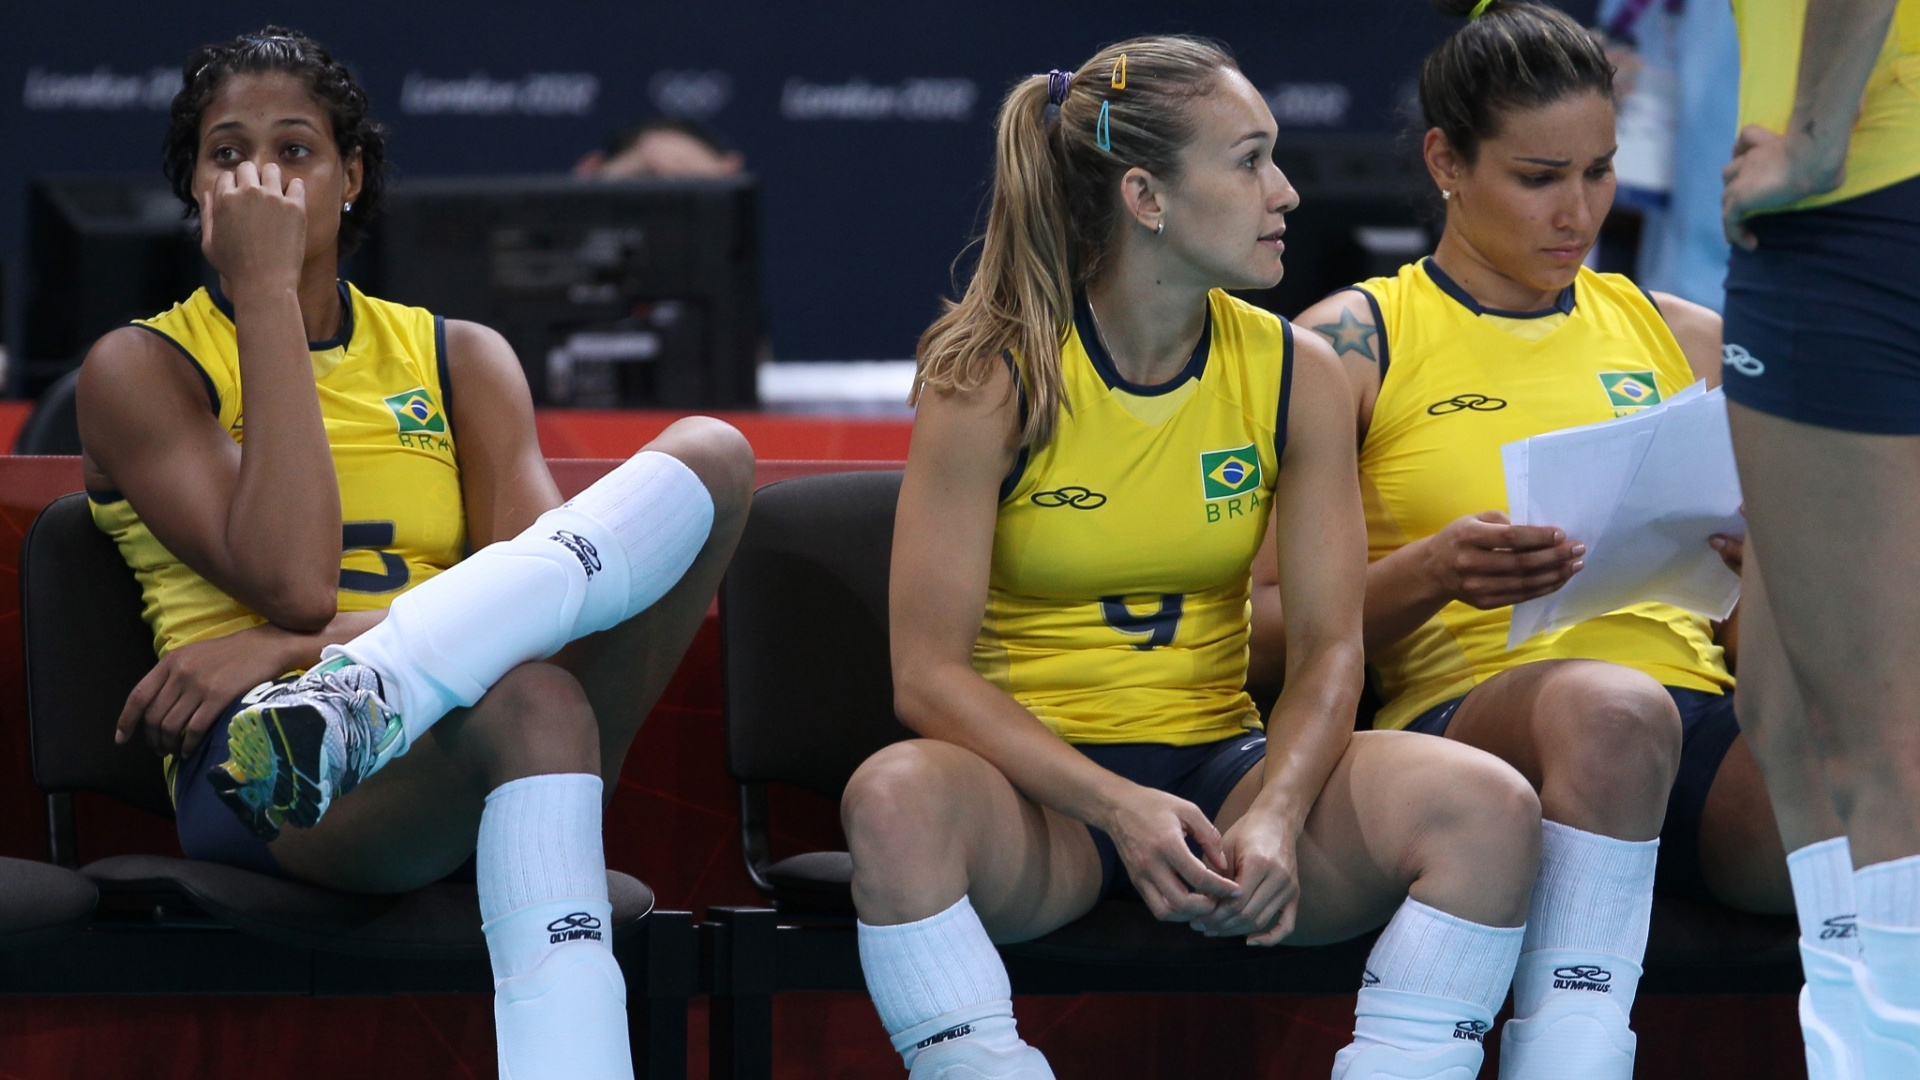 Brasileiras ficam cabisbaixas aps a derrota por 3 sets a 1 para os Estados Unidos, em Londres